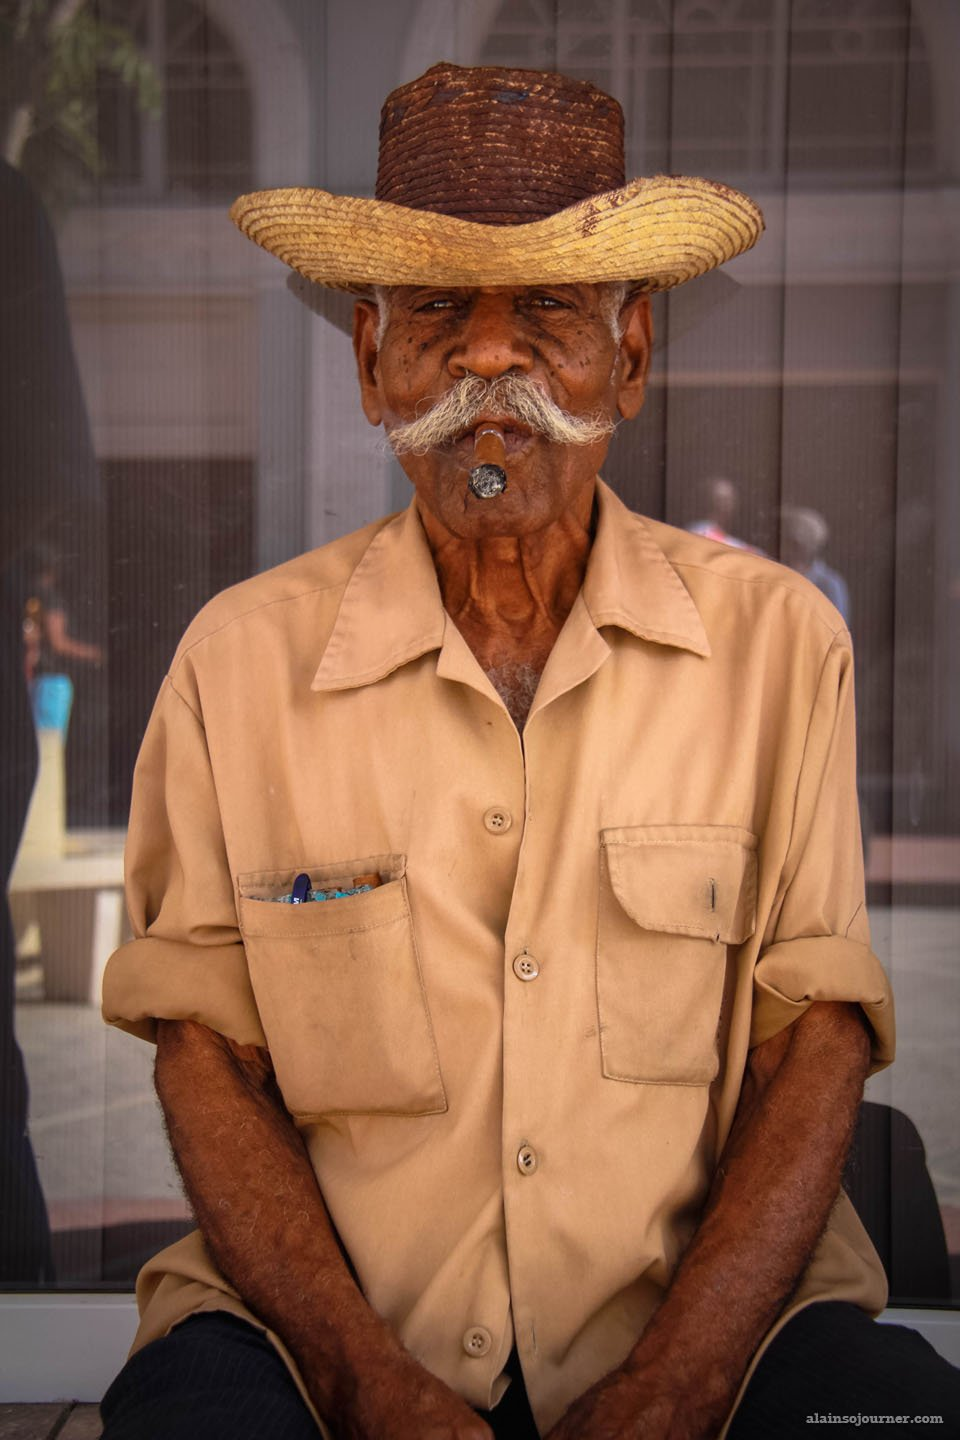 man with a cigar in Cuba